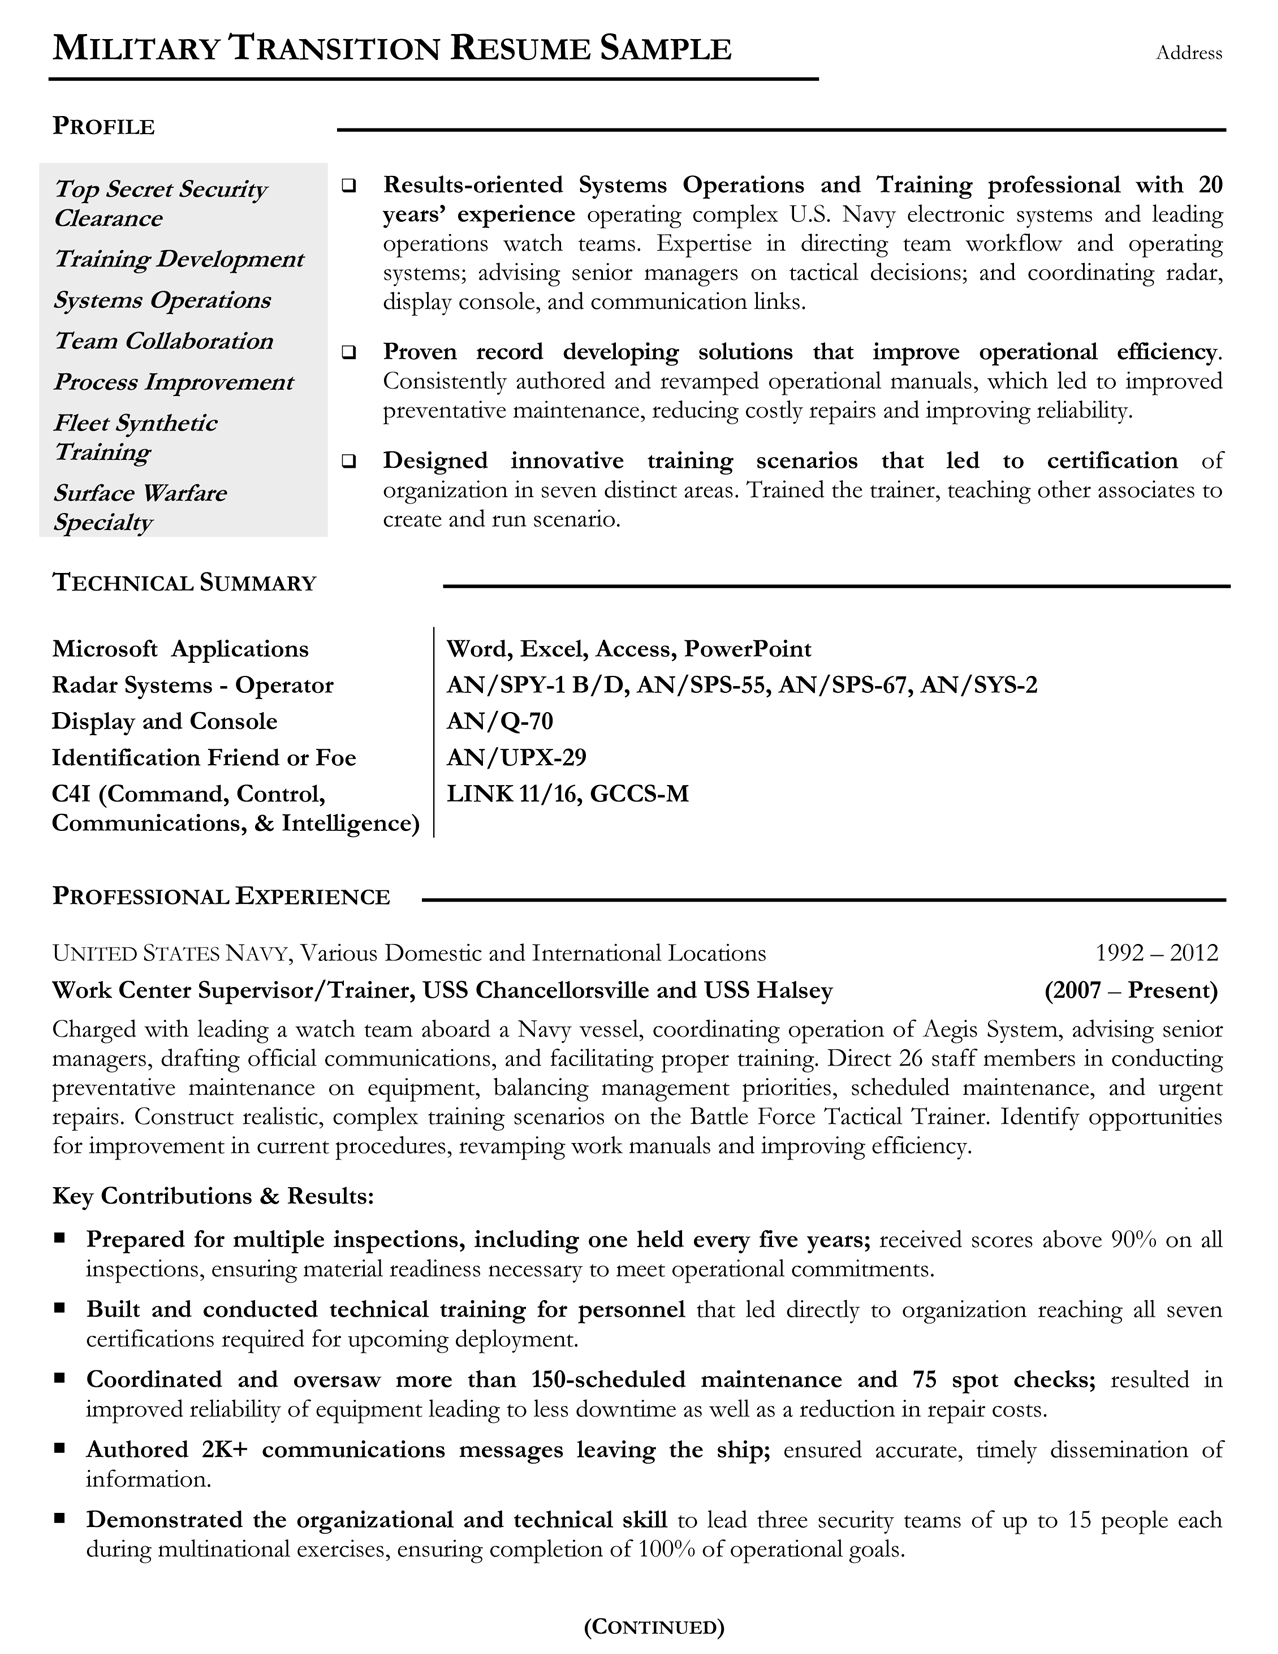 military resume samples examples writers transition out of teaching mtr sample child care Resume Transition Out Of Teaching Resume Examples